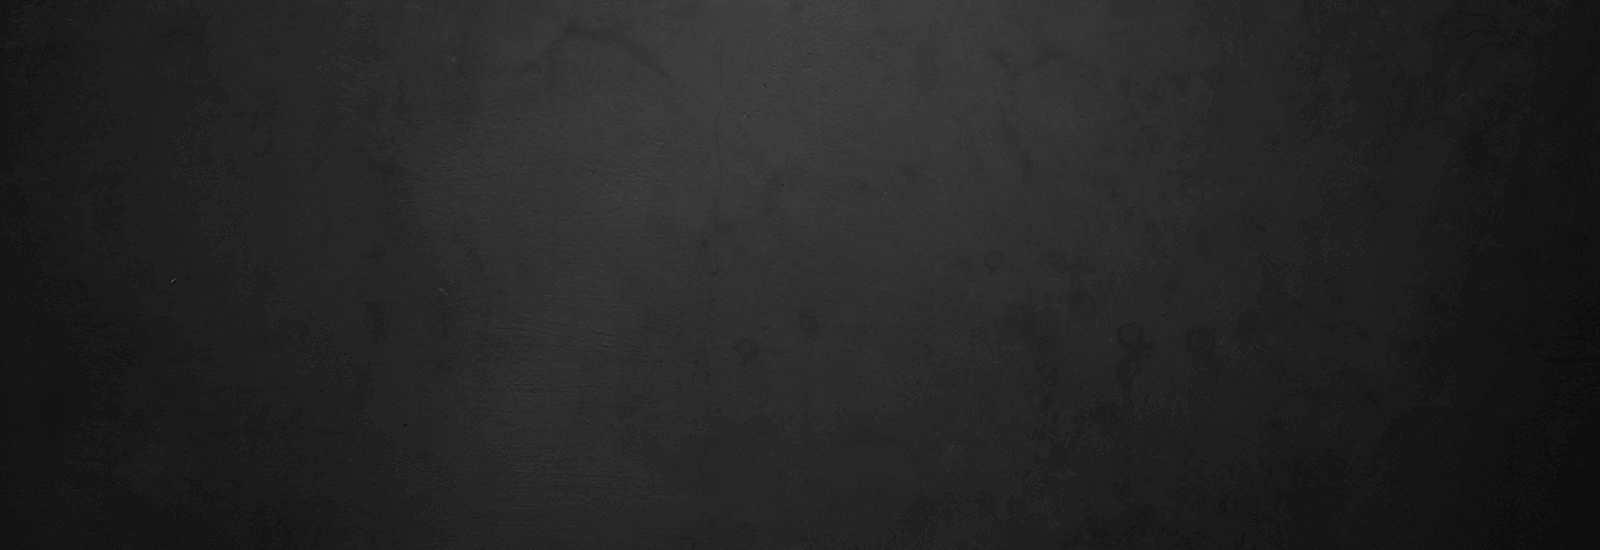 Dark-Gray-background